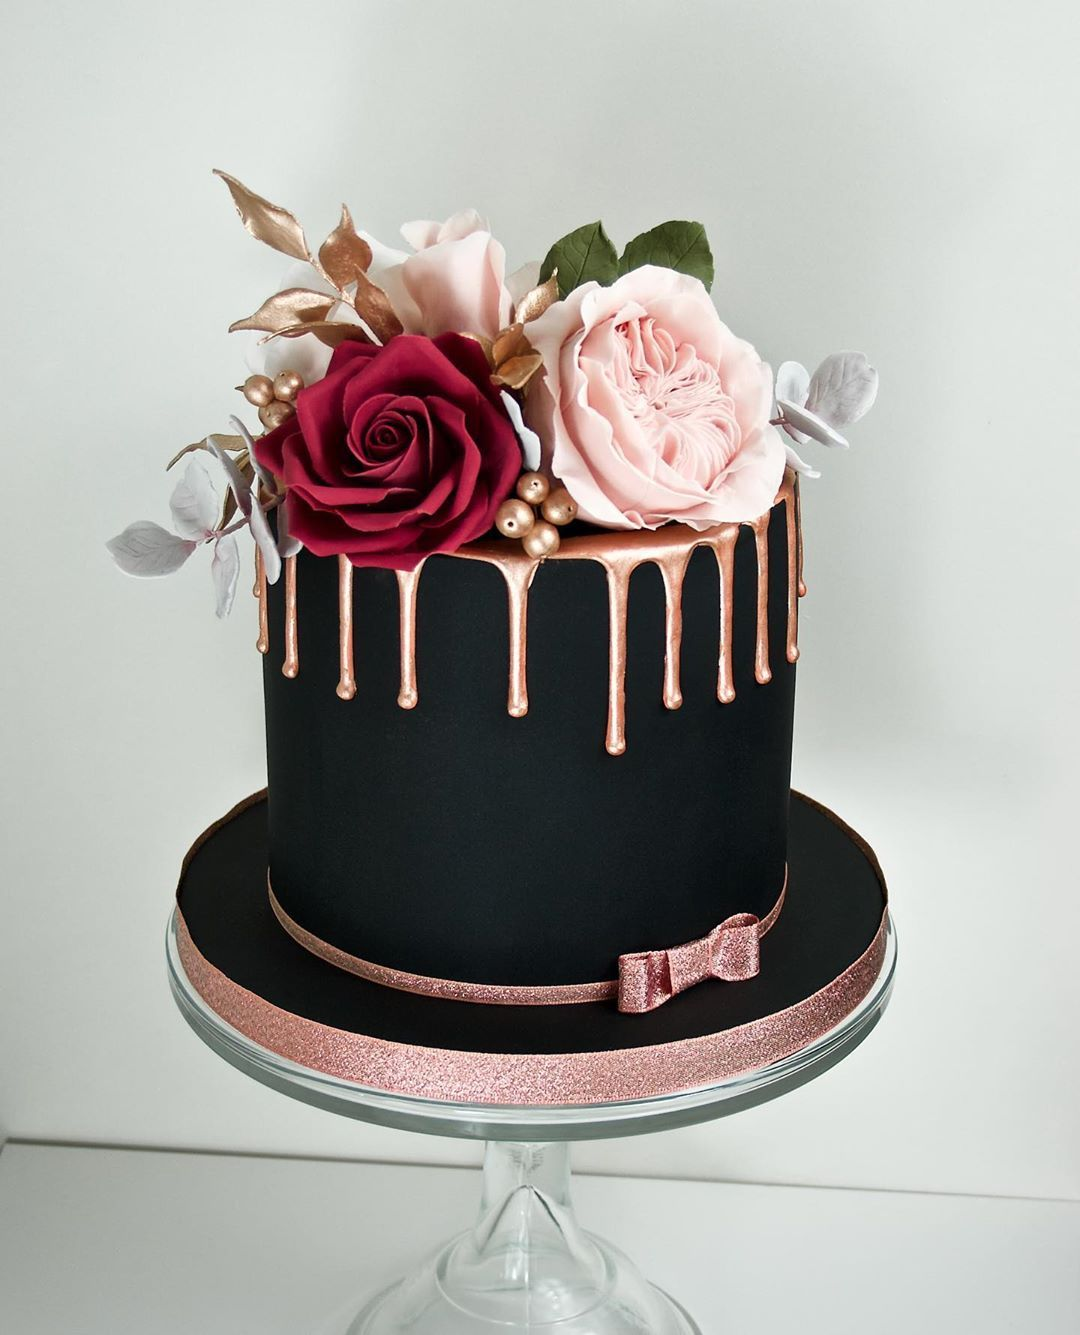 Leanne Kelly On Instagram There S Something Rather Special About A Rose Gold Drip Don T You Think It Might Be The Way I Cake Black Wedding Cakes Drip Cakes